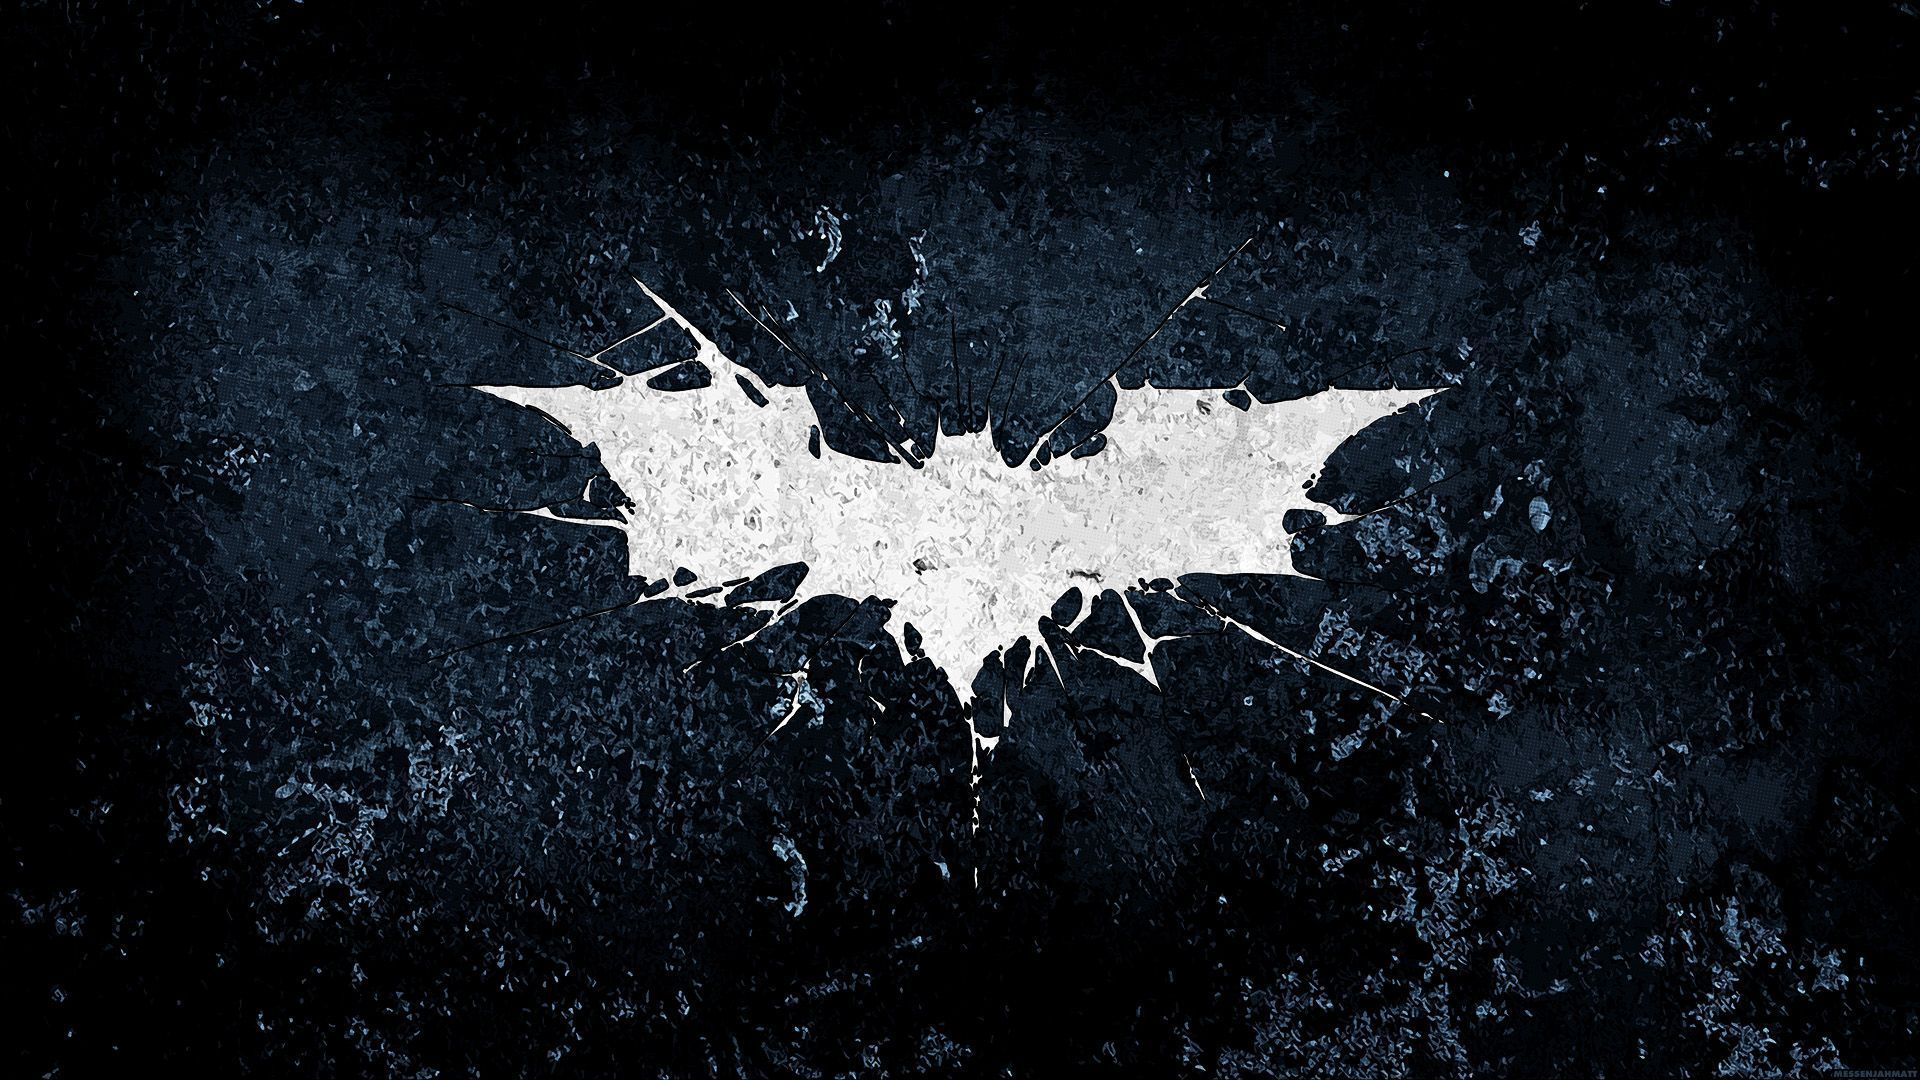 The Dark Knight Rises Wallpapers HD 1920x1080 - Wallpaper ...